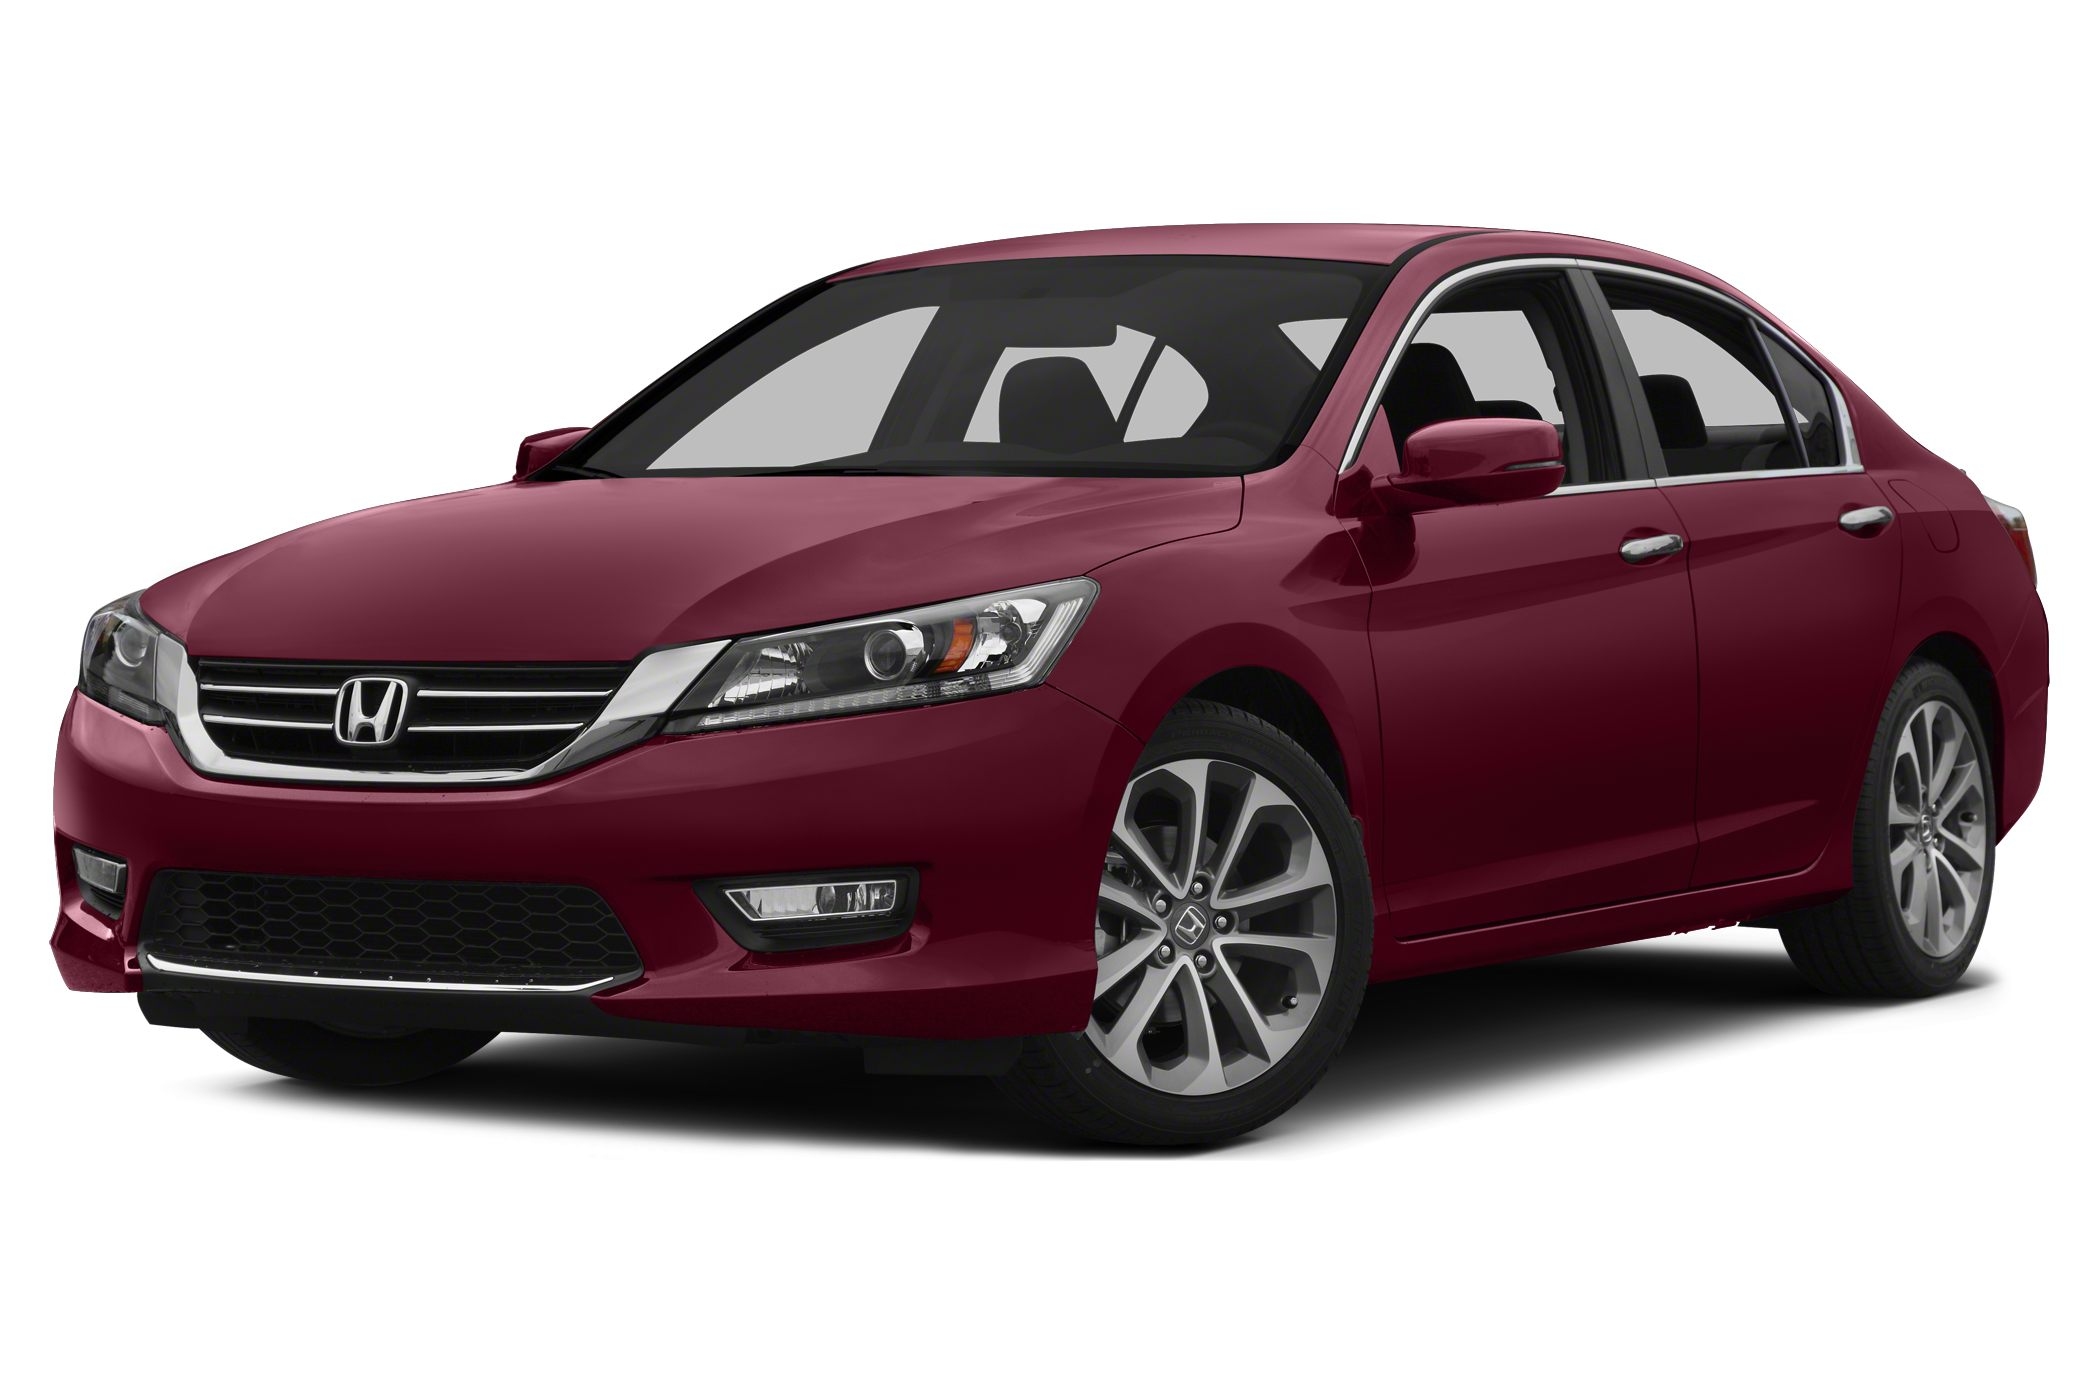 2014 Honda Accord Sport Sedan for sale in Rockville for $24,515 with 0 miles